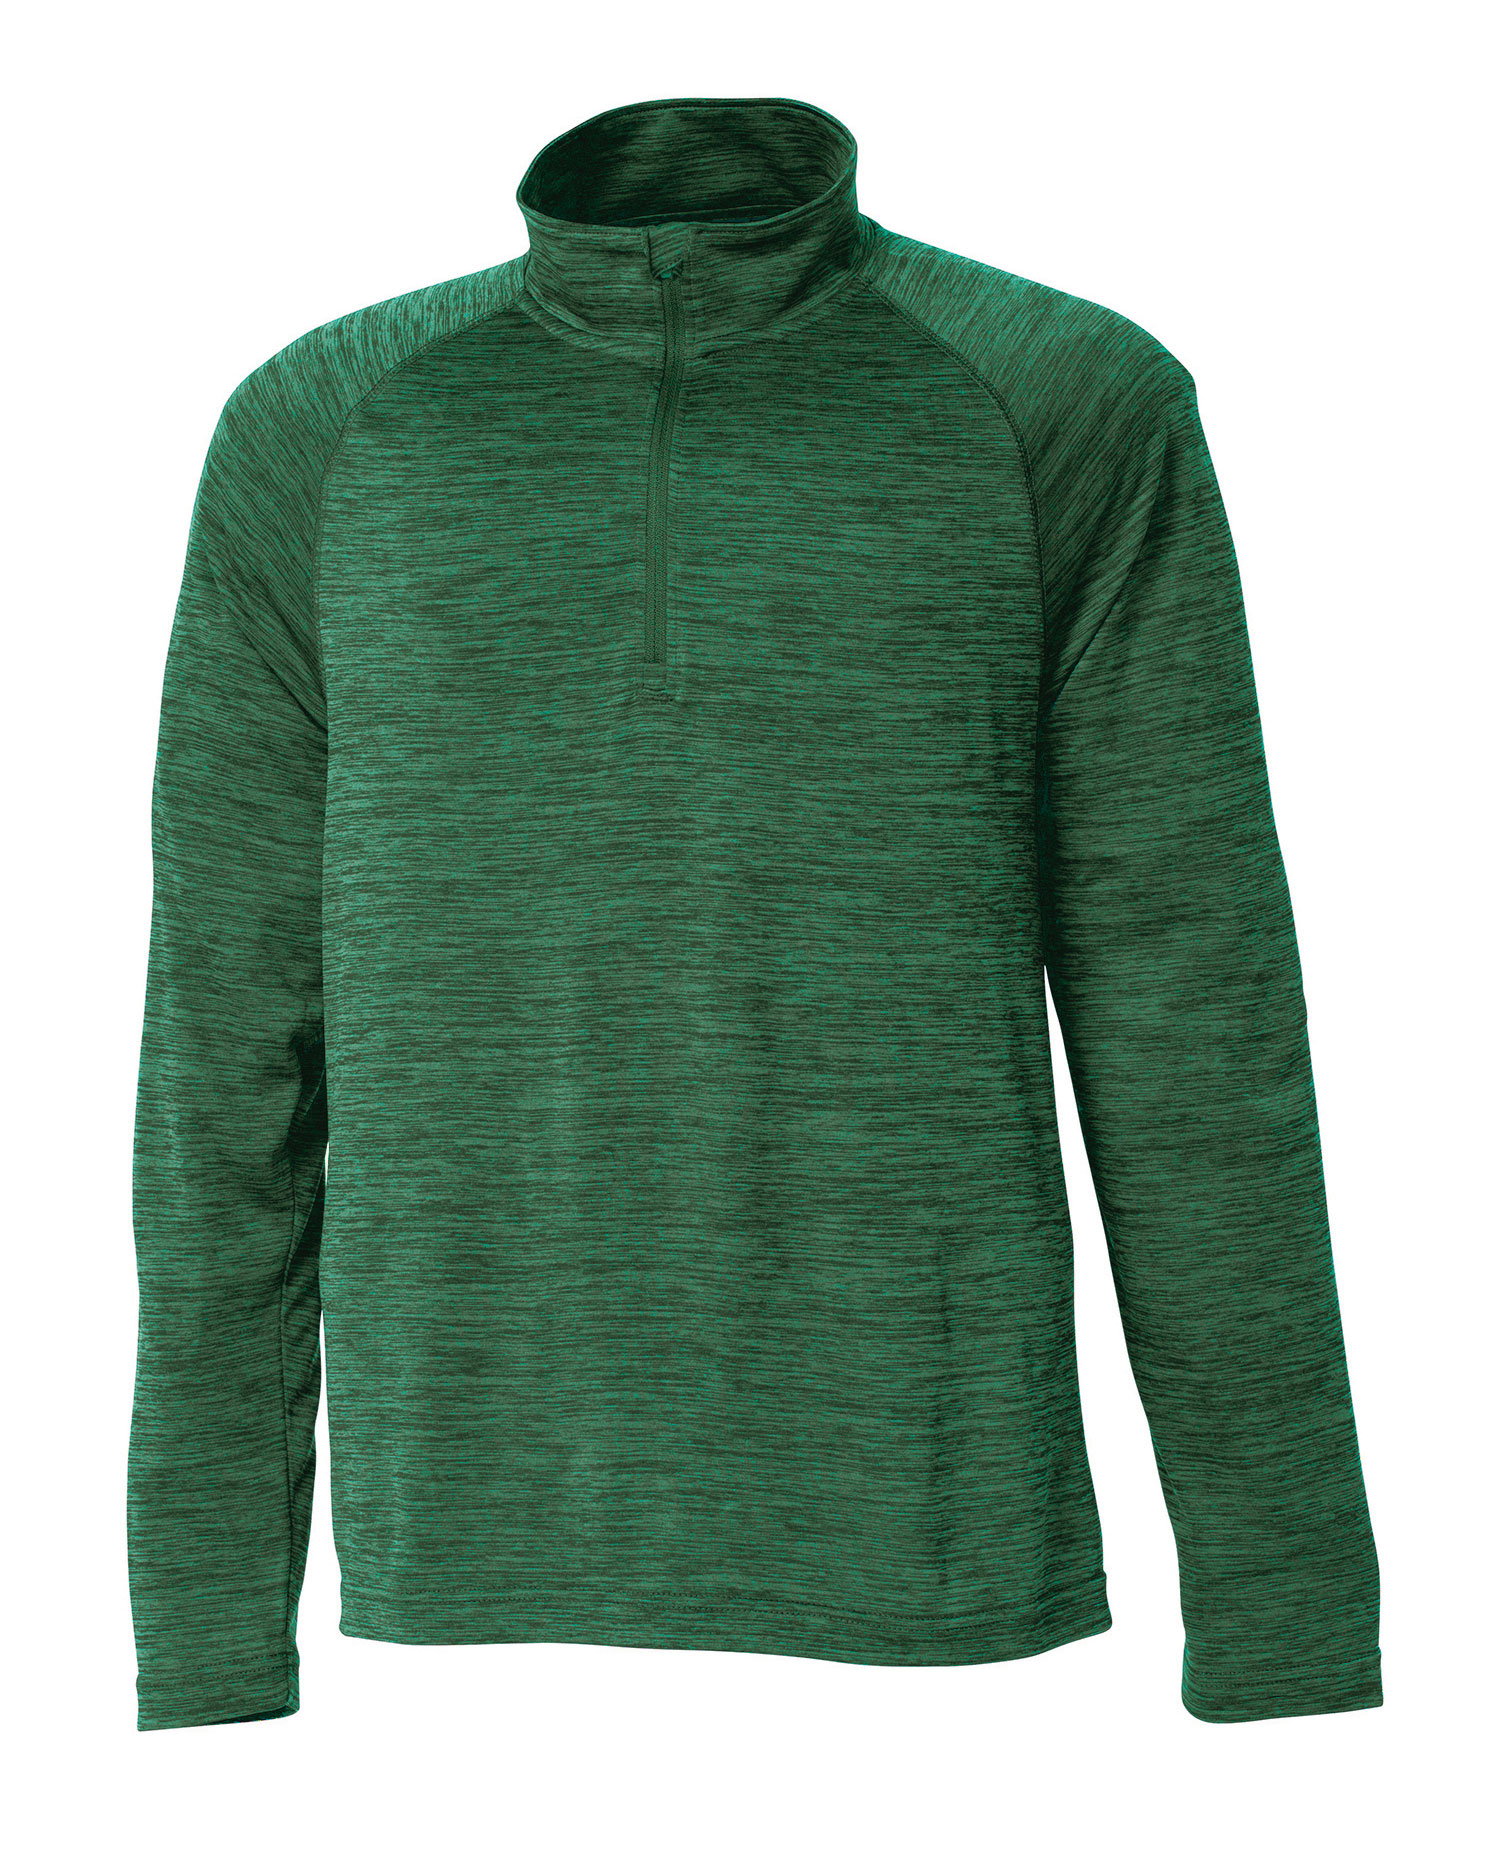 Charles River Mens Space Dye Performance Pullover